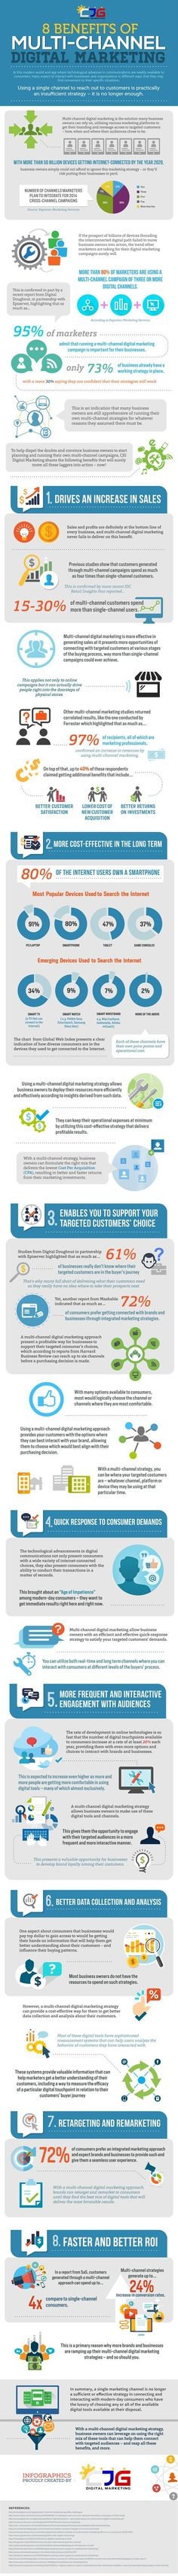 """""""95% of marketers admit that running a multi-channel digital marketing campaign is important for their businesses."""" #digitalmarketingcampaign"""